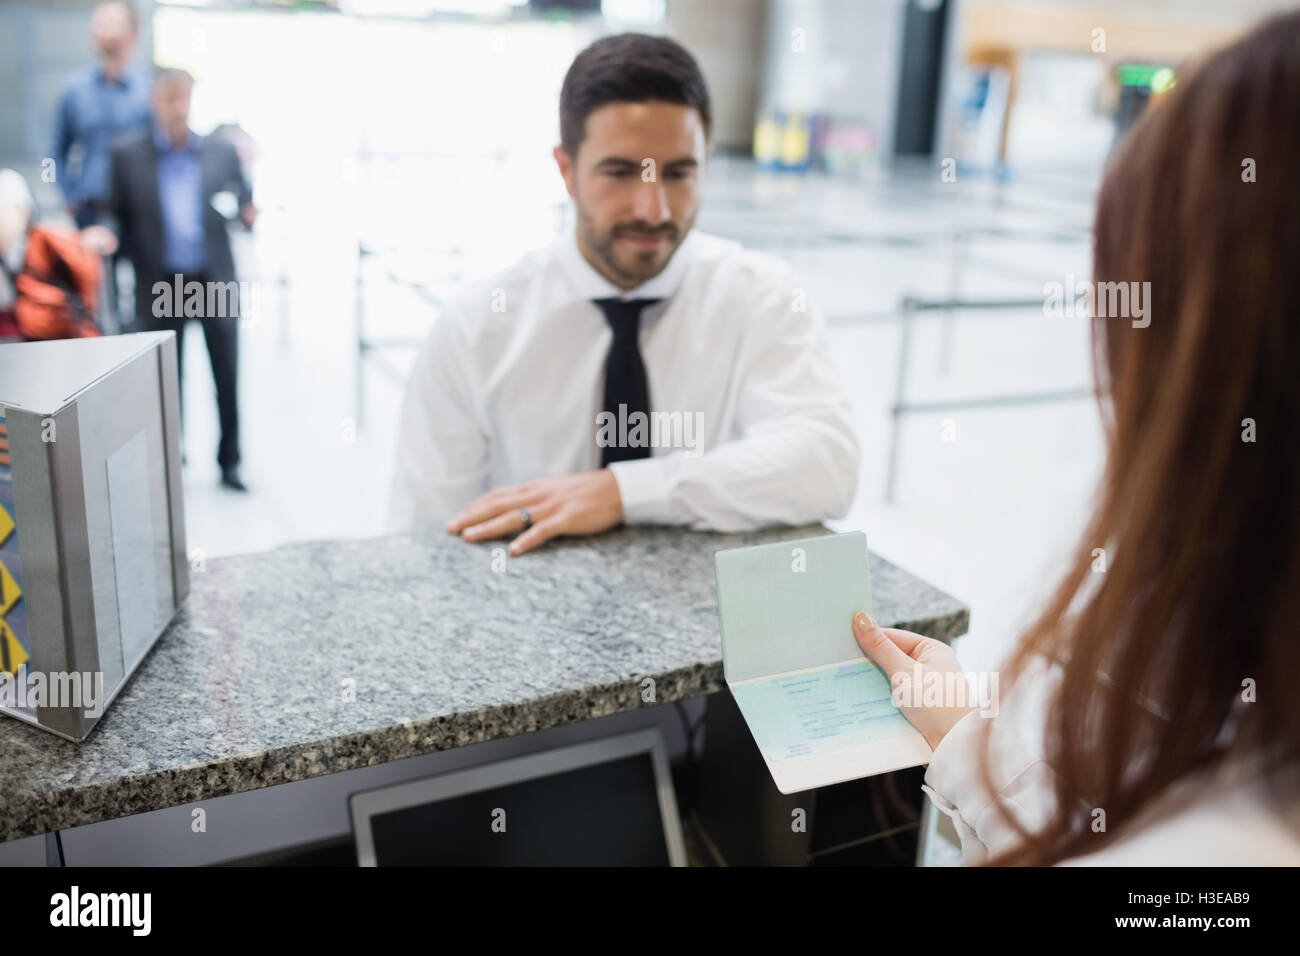 Airline check-in attendant checking passport of passenger - Stock Image